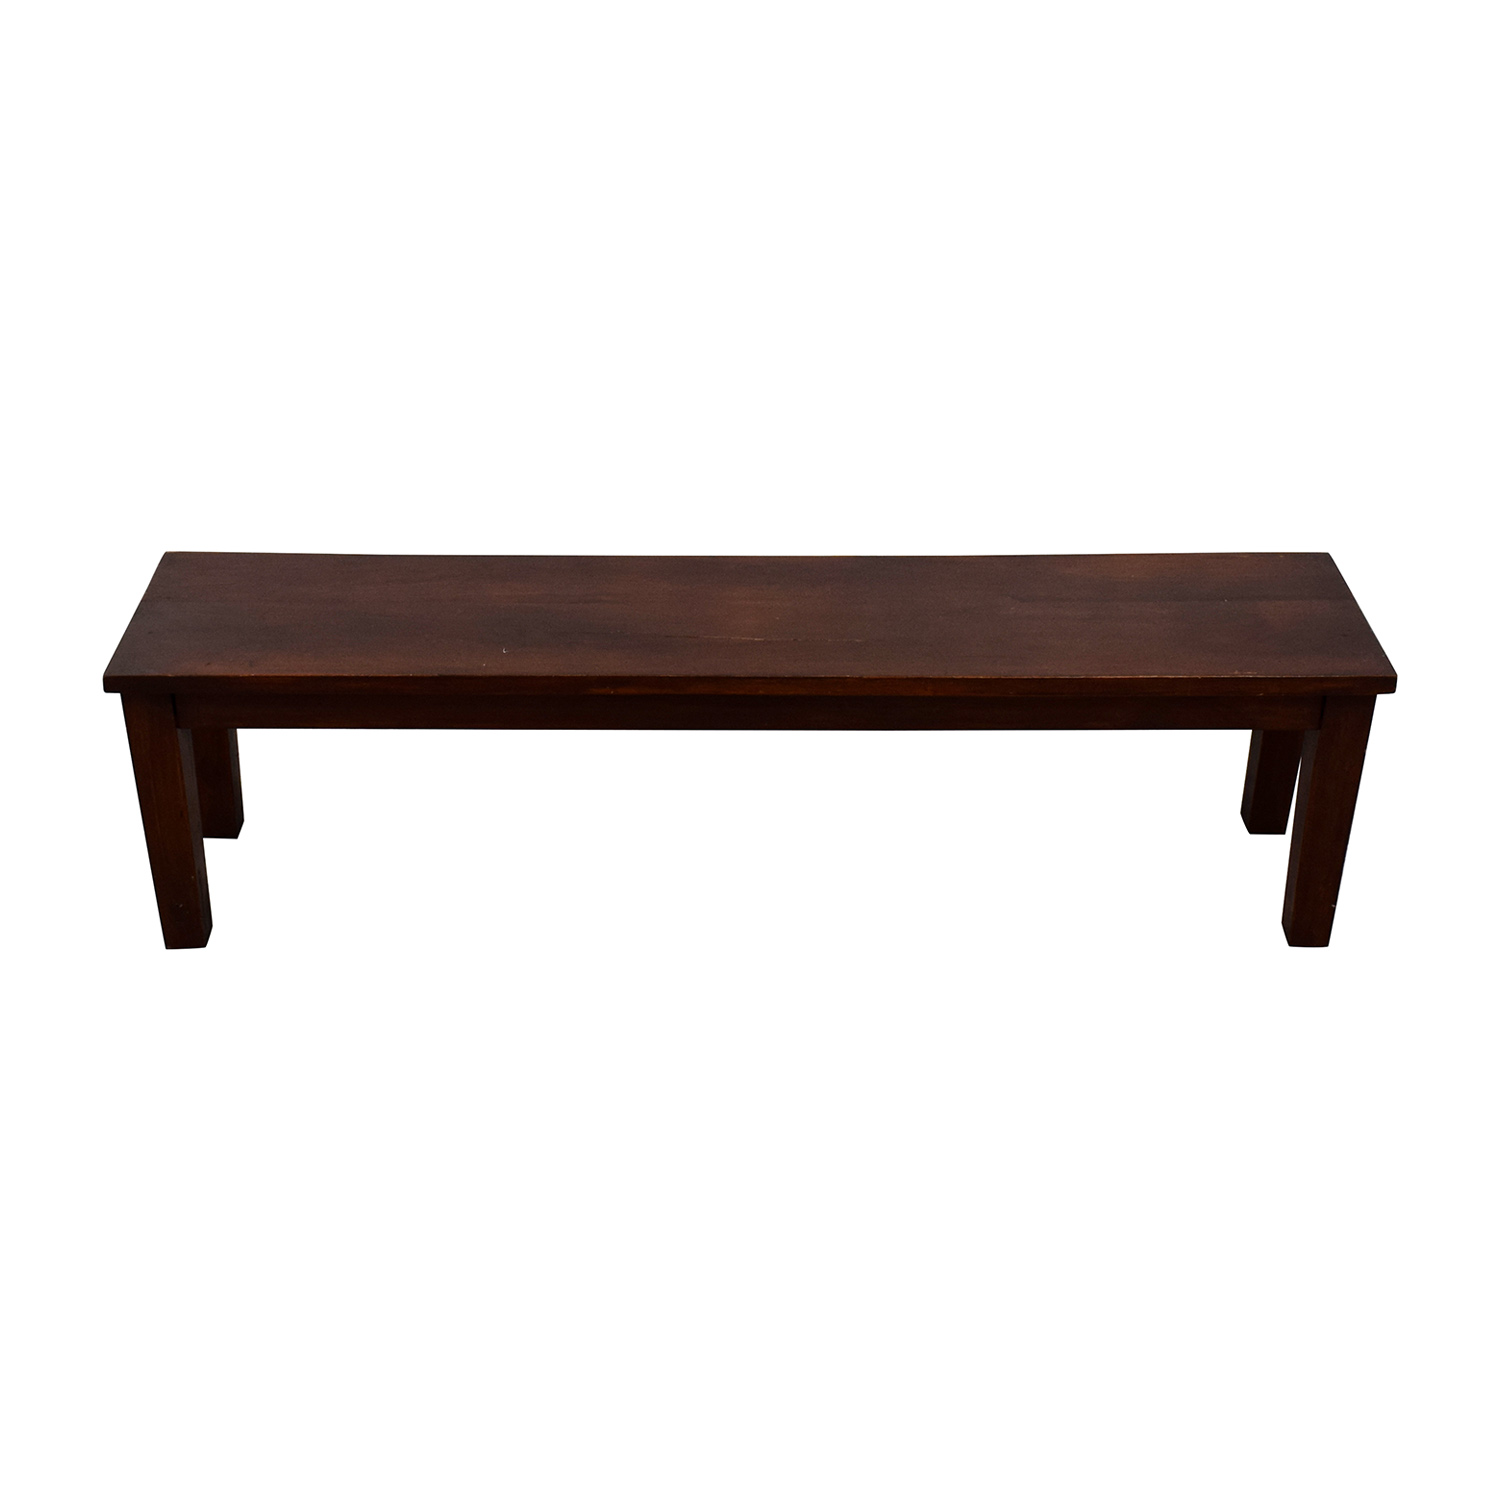 Crate & Barrel Crate & Barrel Entry Bench for sale